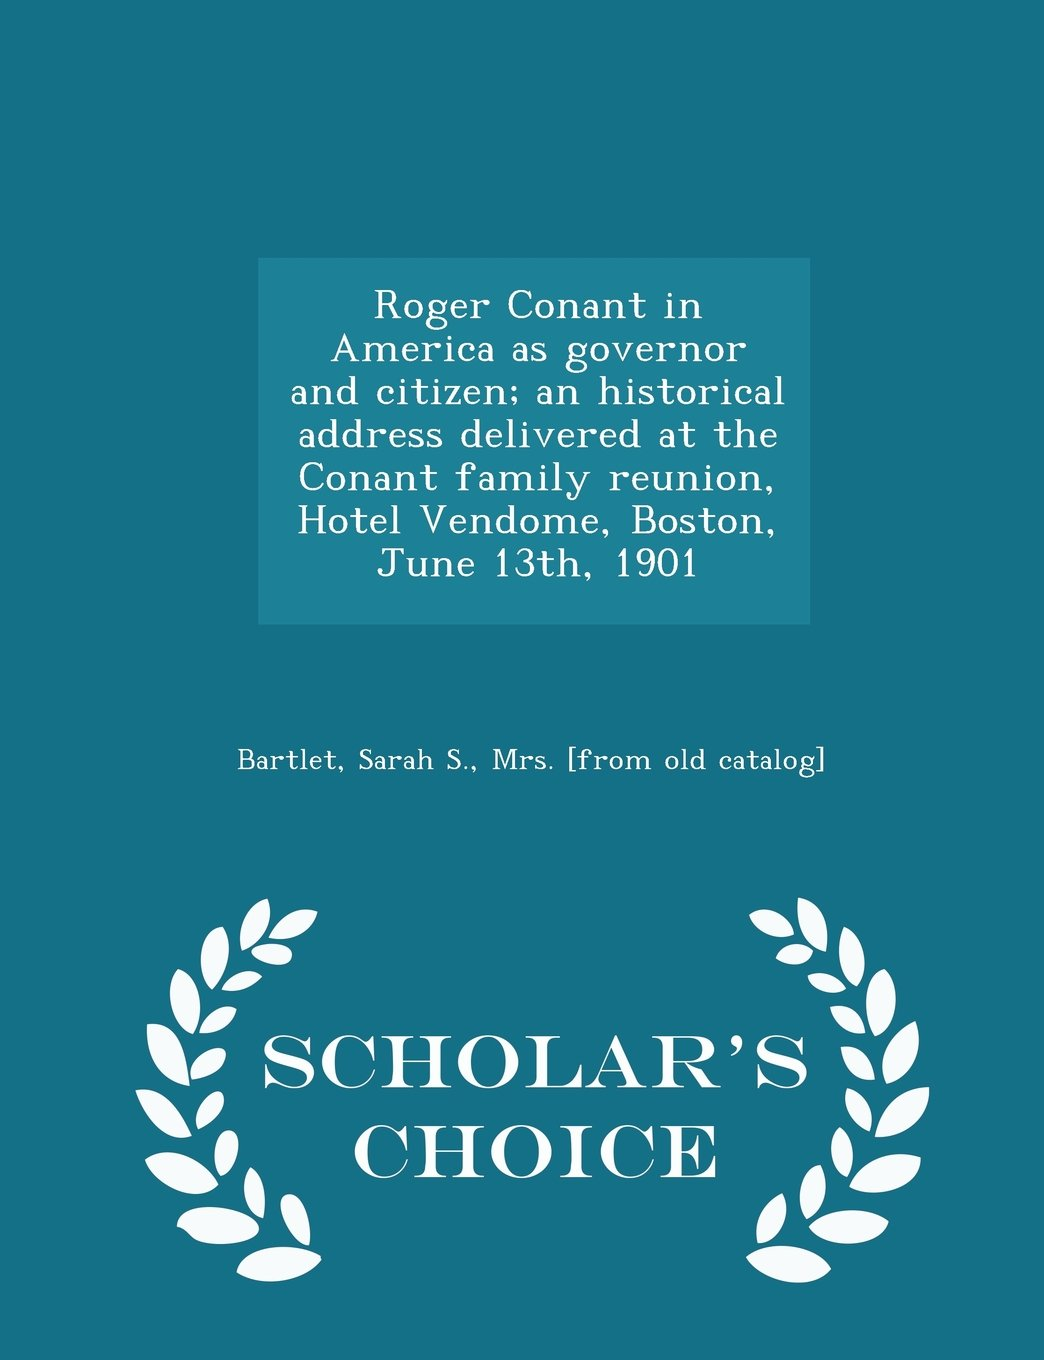 Download Roger Conant in America as governor and citizen; an historical address delivered at the Conant family reunion, Hotel Vendome, Boston, June 13th, 1901  - Scholar's Choice Edition PDF